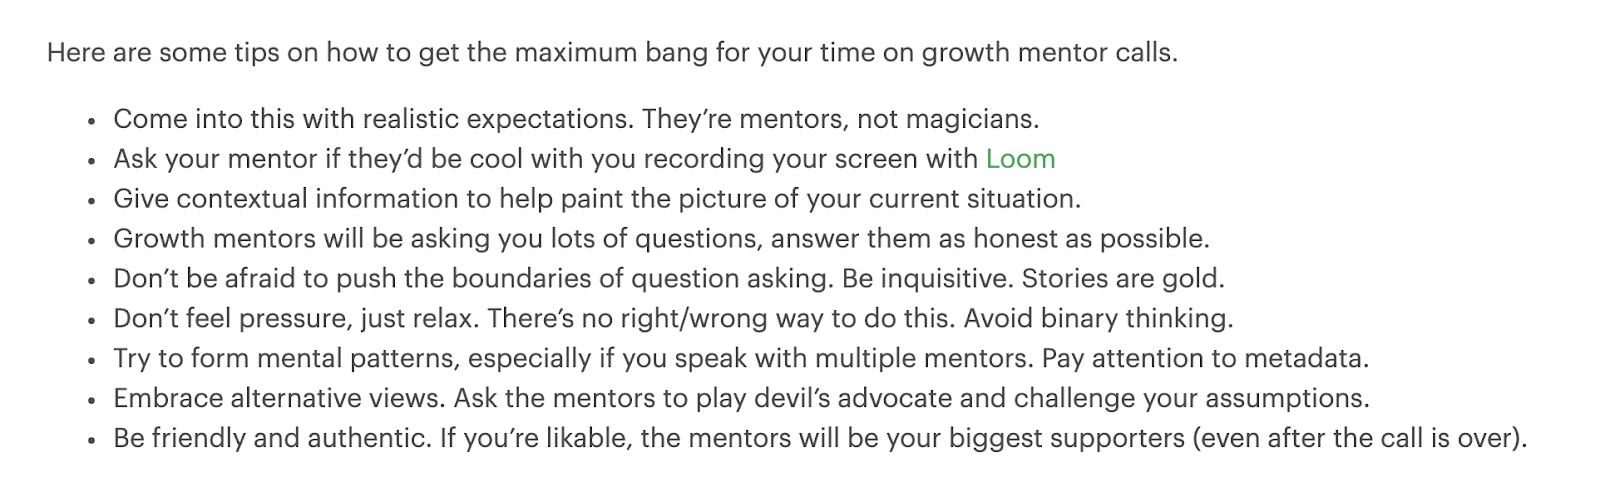 GrowthMentor's tips